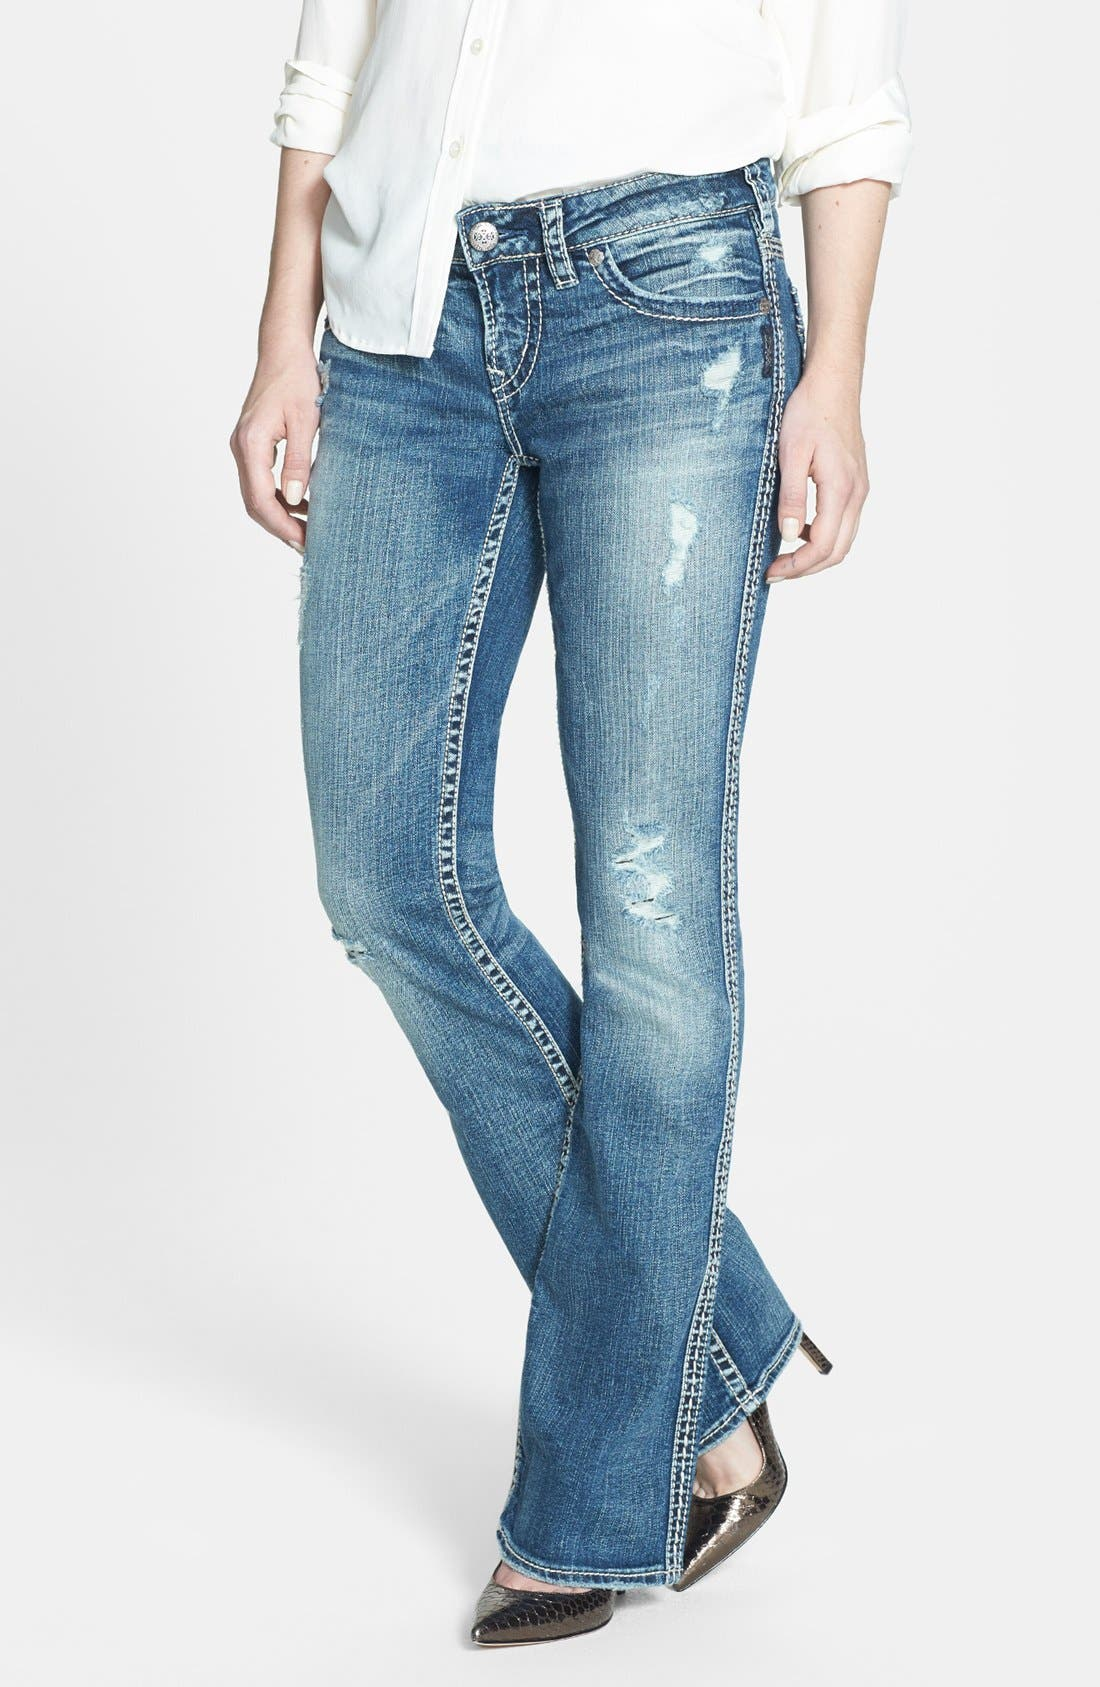 Alternate Image 1 Selected - Silver Jeans Co. 'Aiko' Faux Flap Pocket Distressed Bootcut Jeans (Indigo)